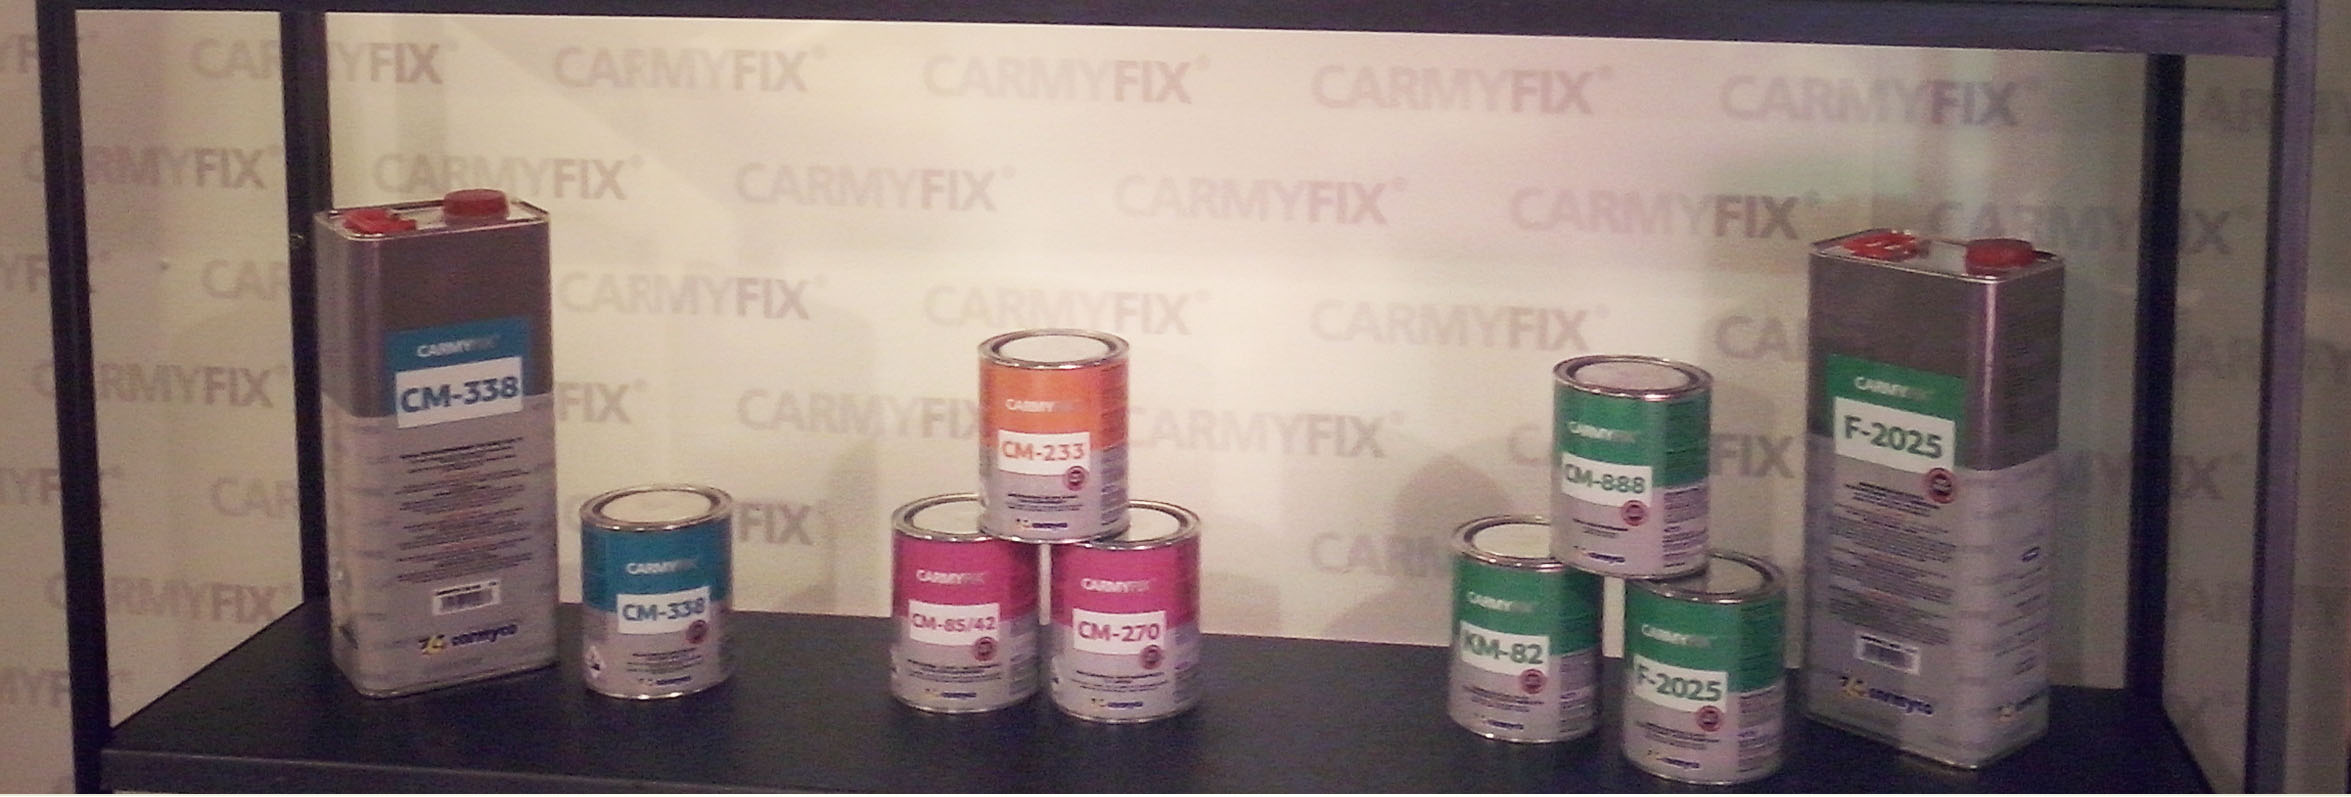 CARMYCO PRODUCTS_2